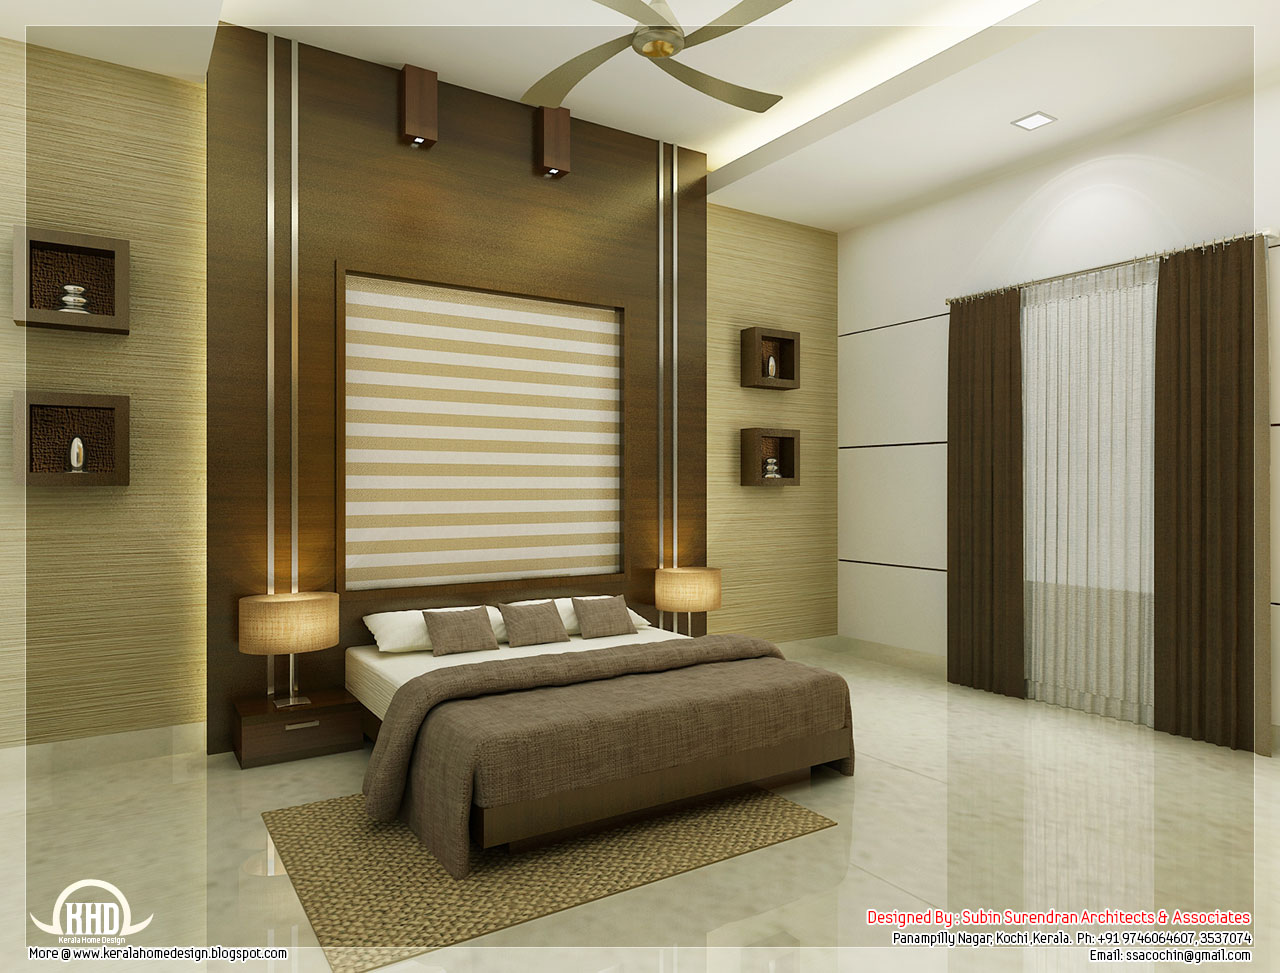 Beautiful bedroom interior designs kerala home design and floor plans - Interior design ideas for small bedrooms ...